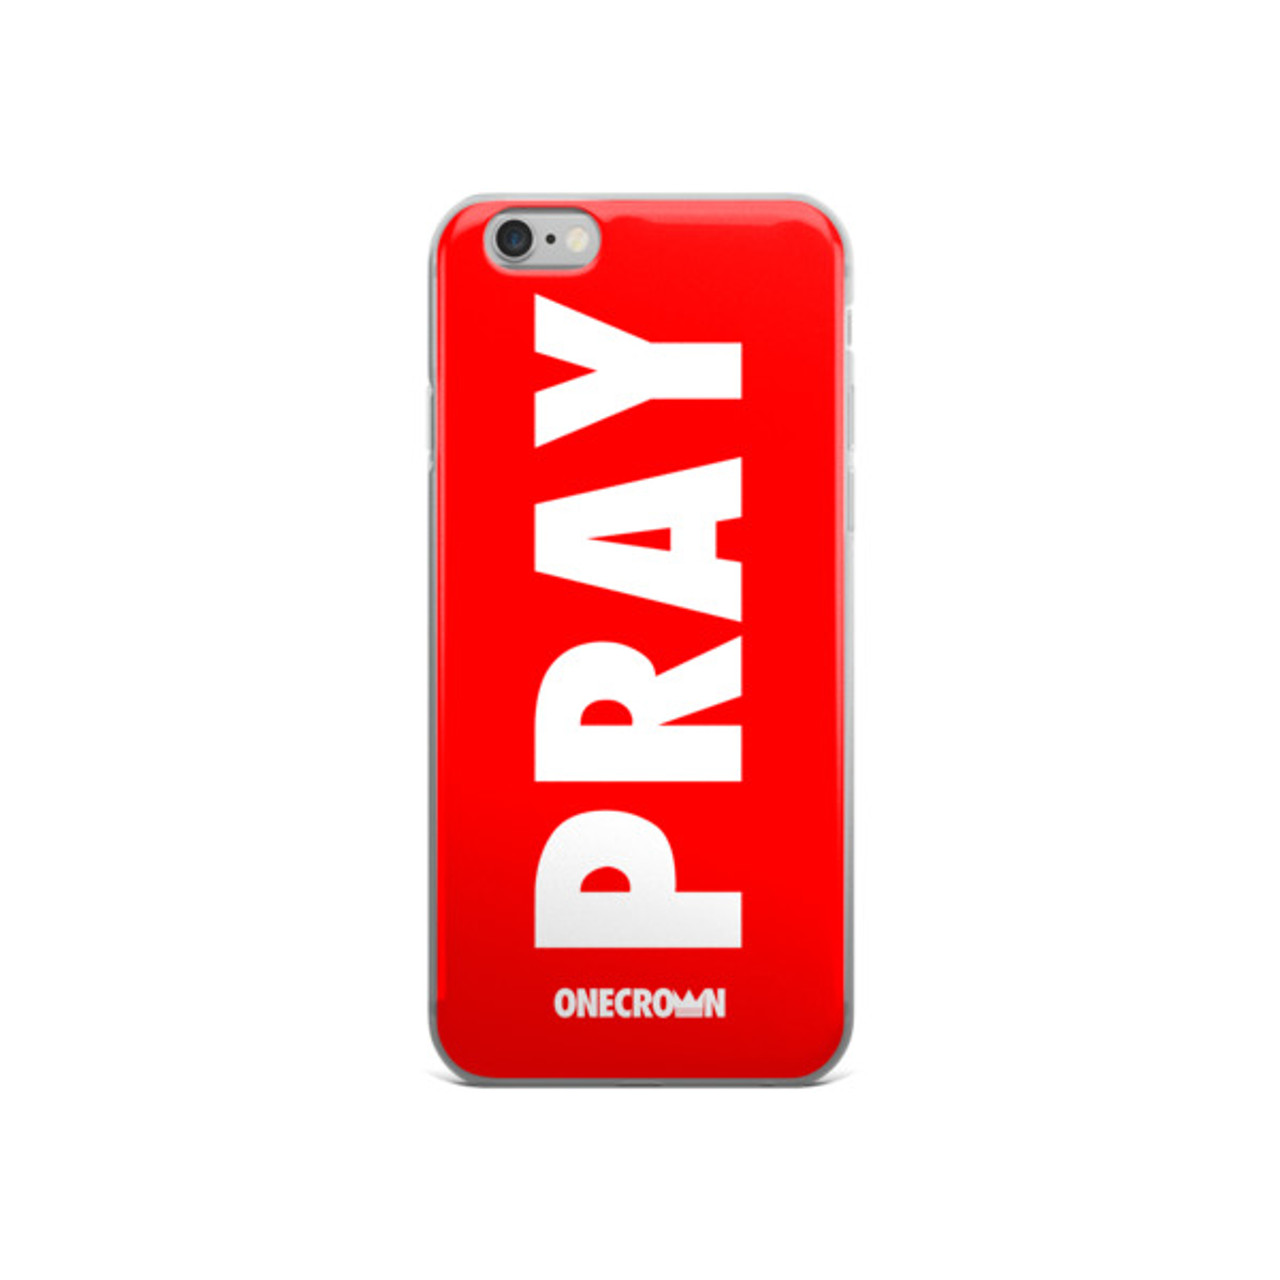 PRAY iPhone Case - 5/5s/Se, 6/6s, 6/6s Plus - Red